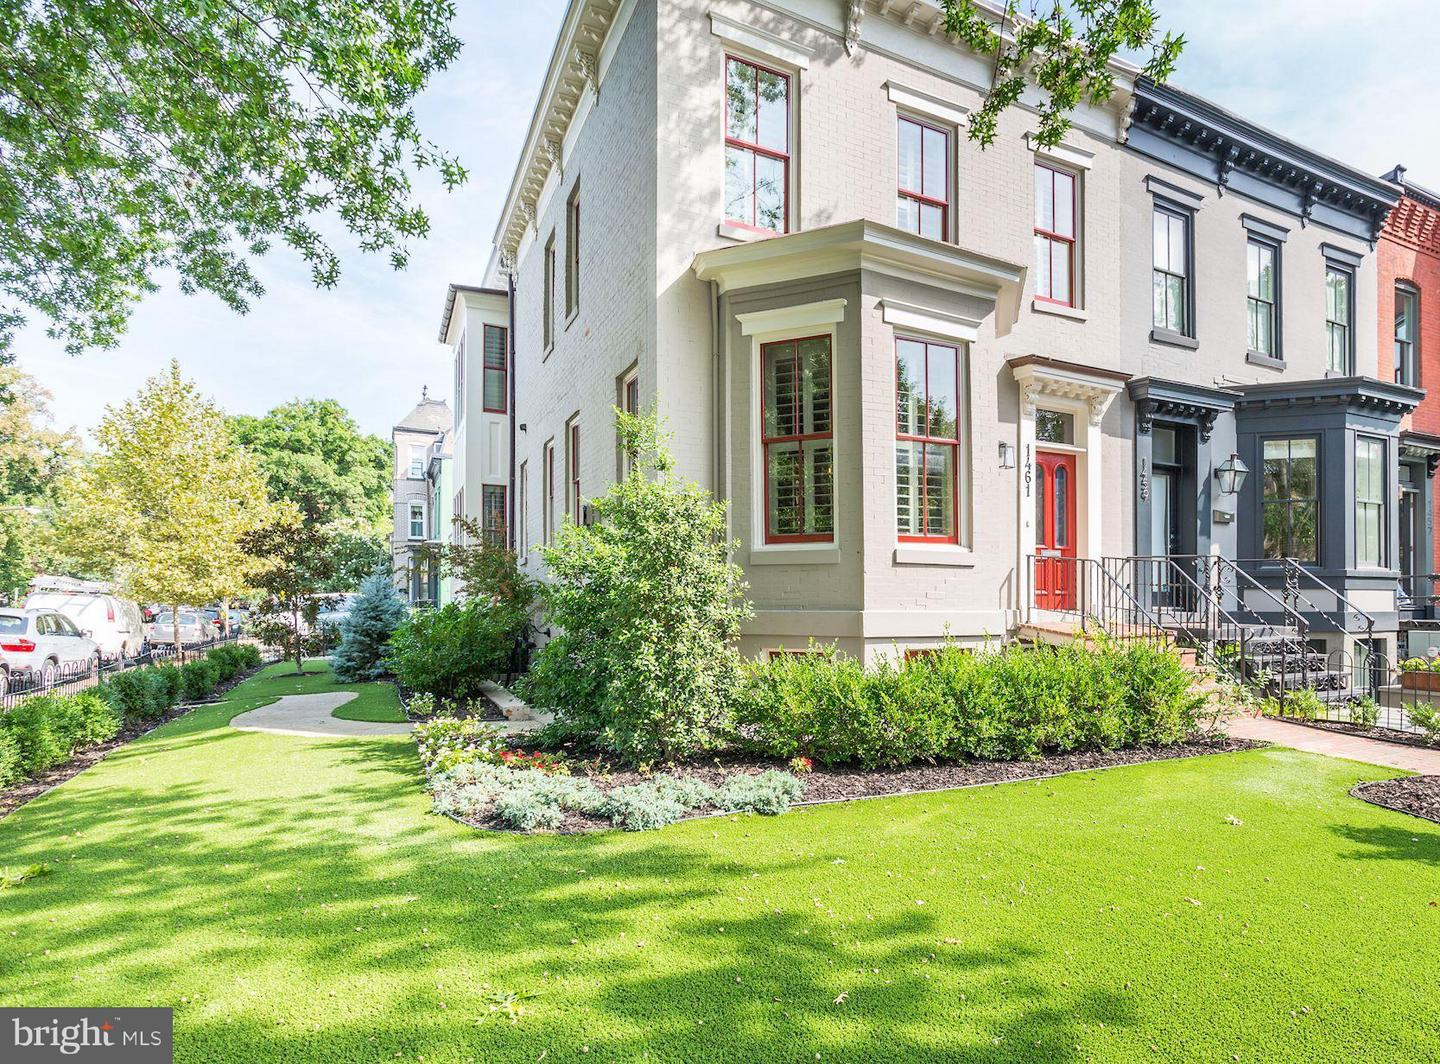 Condo / Townhouse for Sale at 1461 S Street NW Washington, District Of Columbia 20009 United States